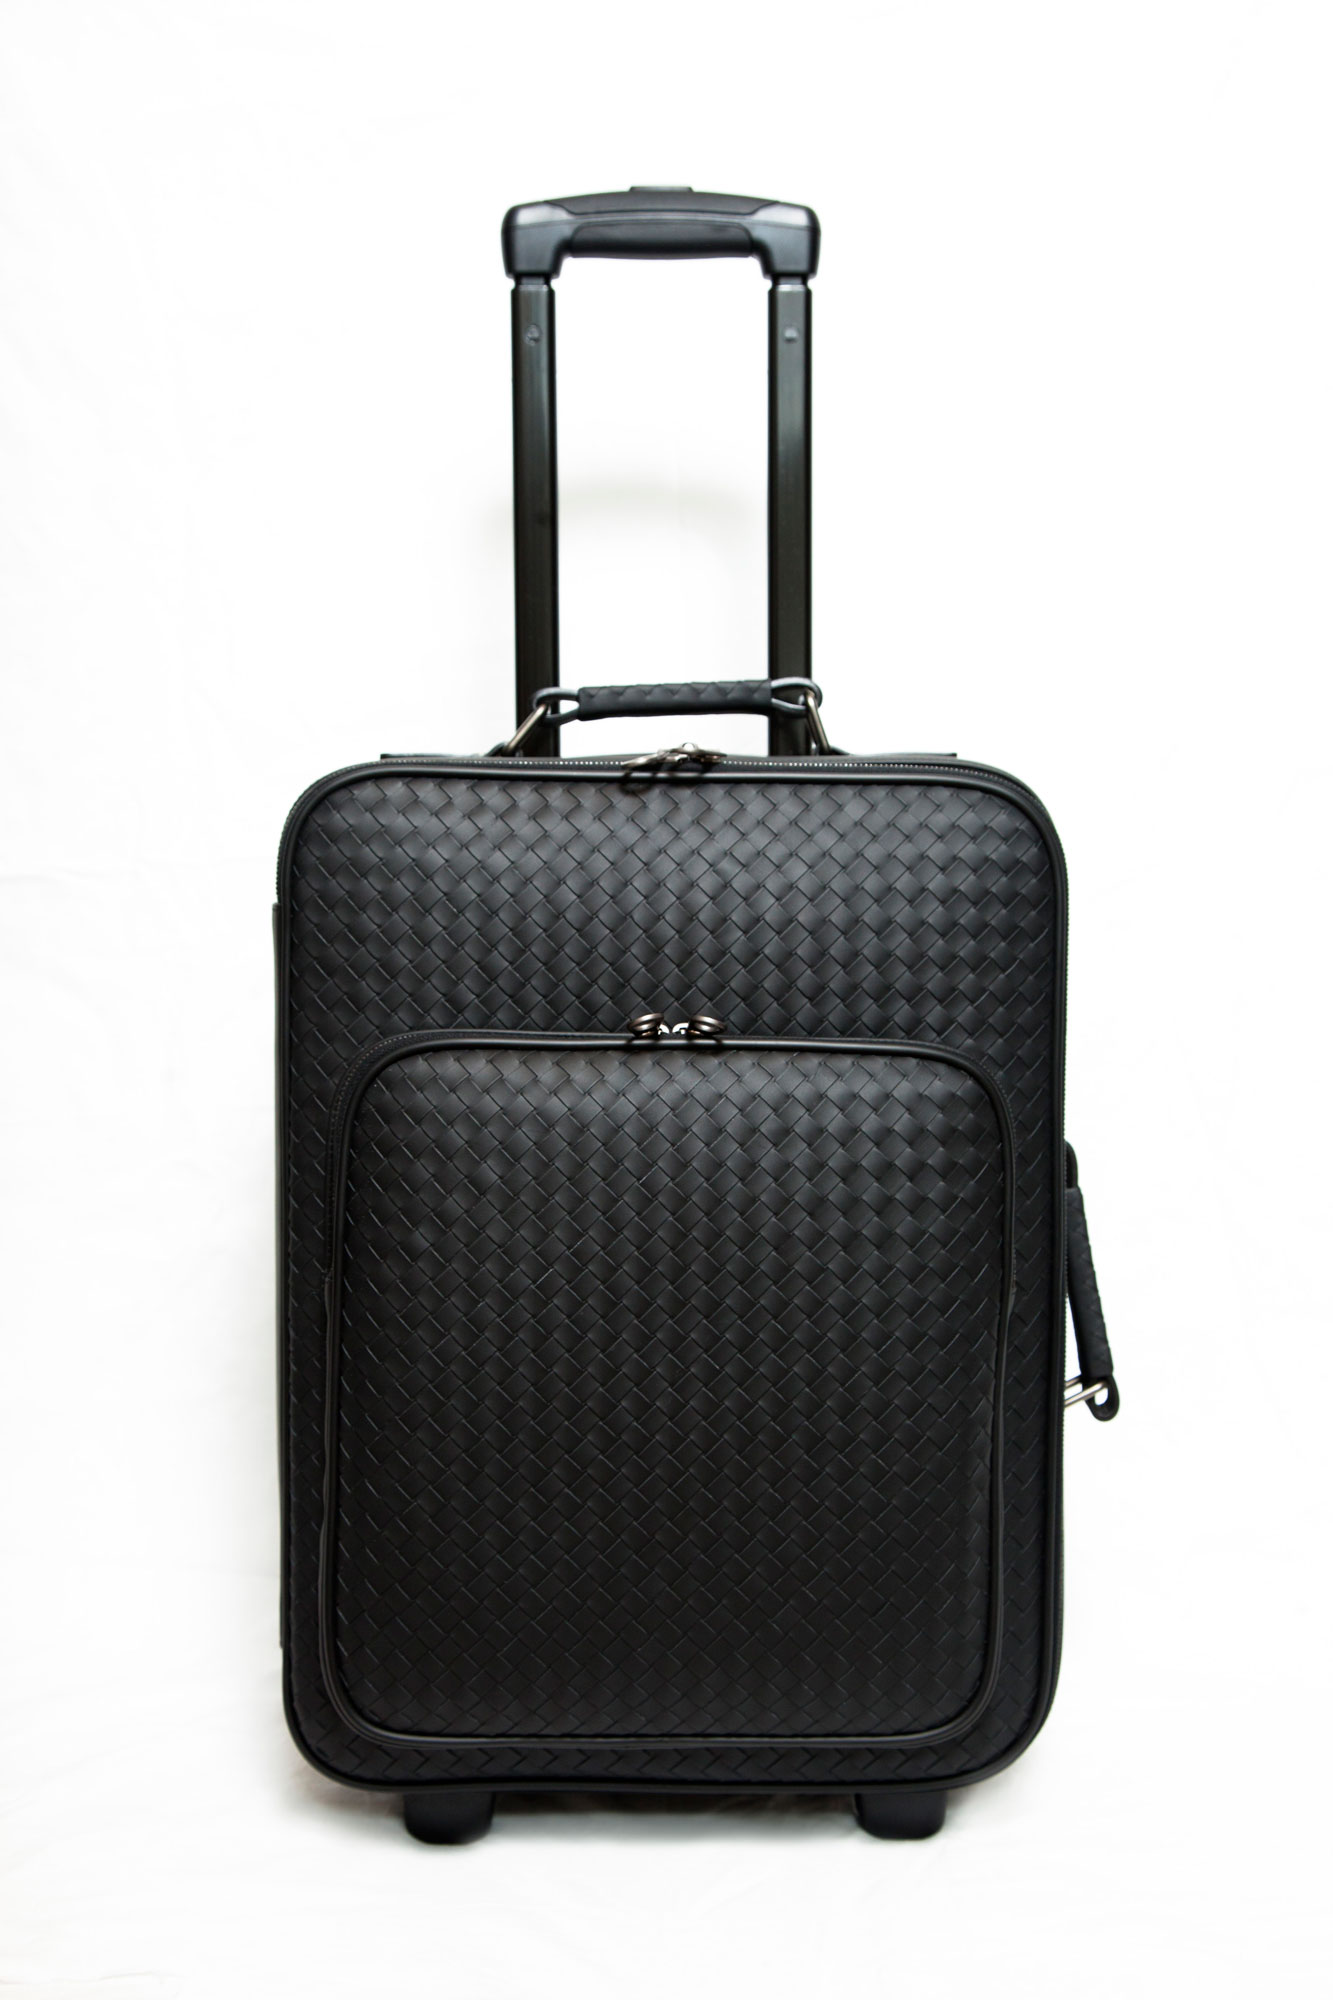 Cases And Luggage For Fall-Winter 2015